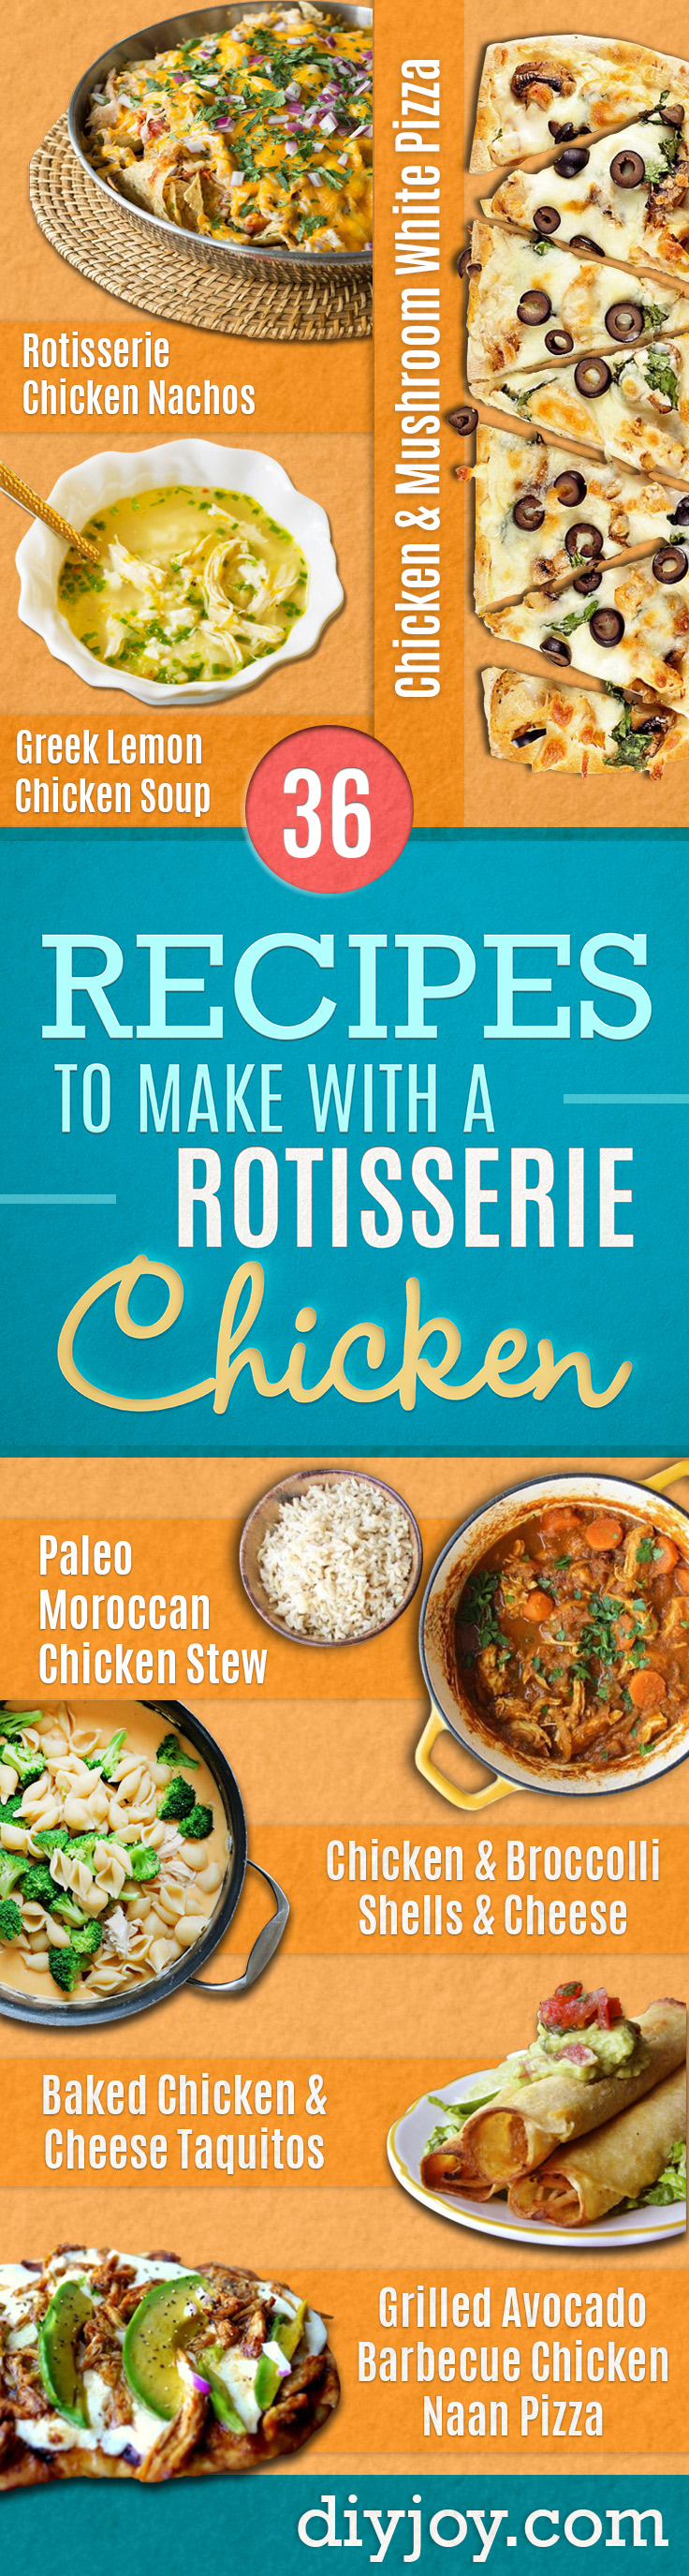 Easy Recipes For Rotisserie Chicken - Healthy Recipe Ideas for Leftovers - Comfort Foods With Chicken - Low Carb and Gluten Free, Crock Pot Meals, Appetizers, Salads, Sour Cream Enchiladas, Pasta, One Pot Meals and Casseroles for Quick Dinners